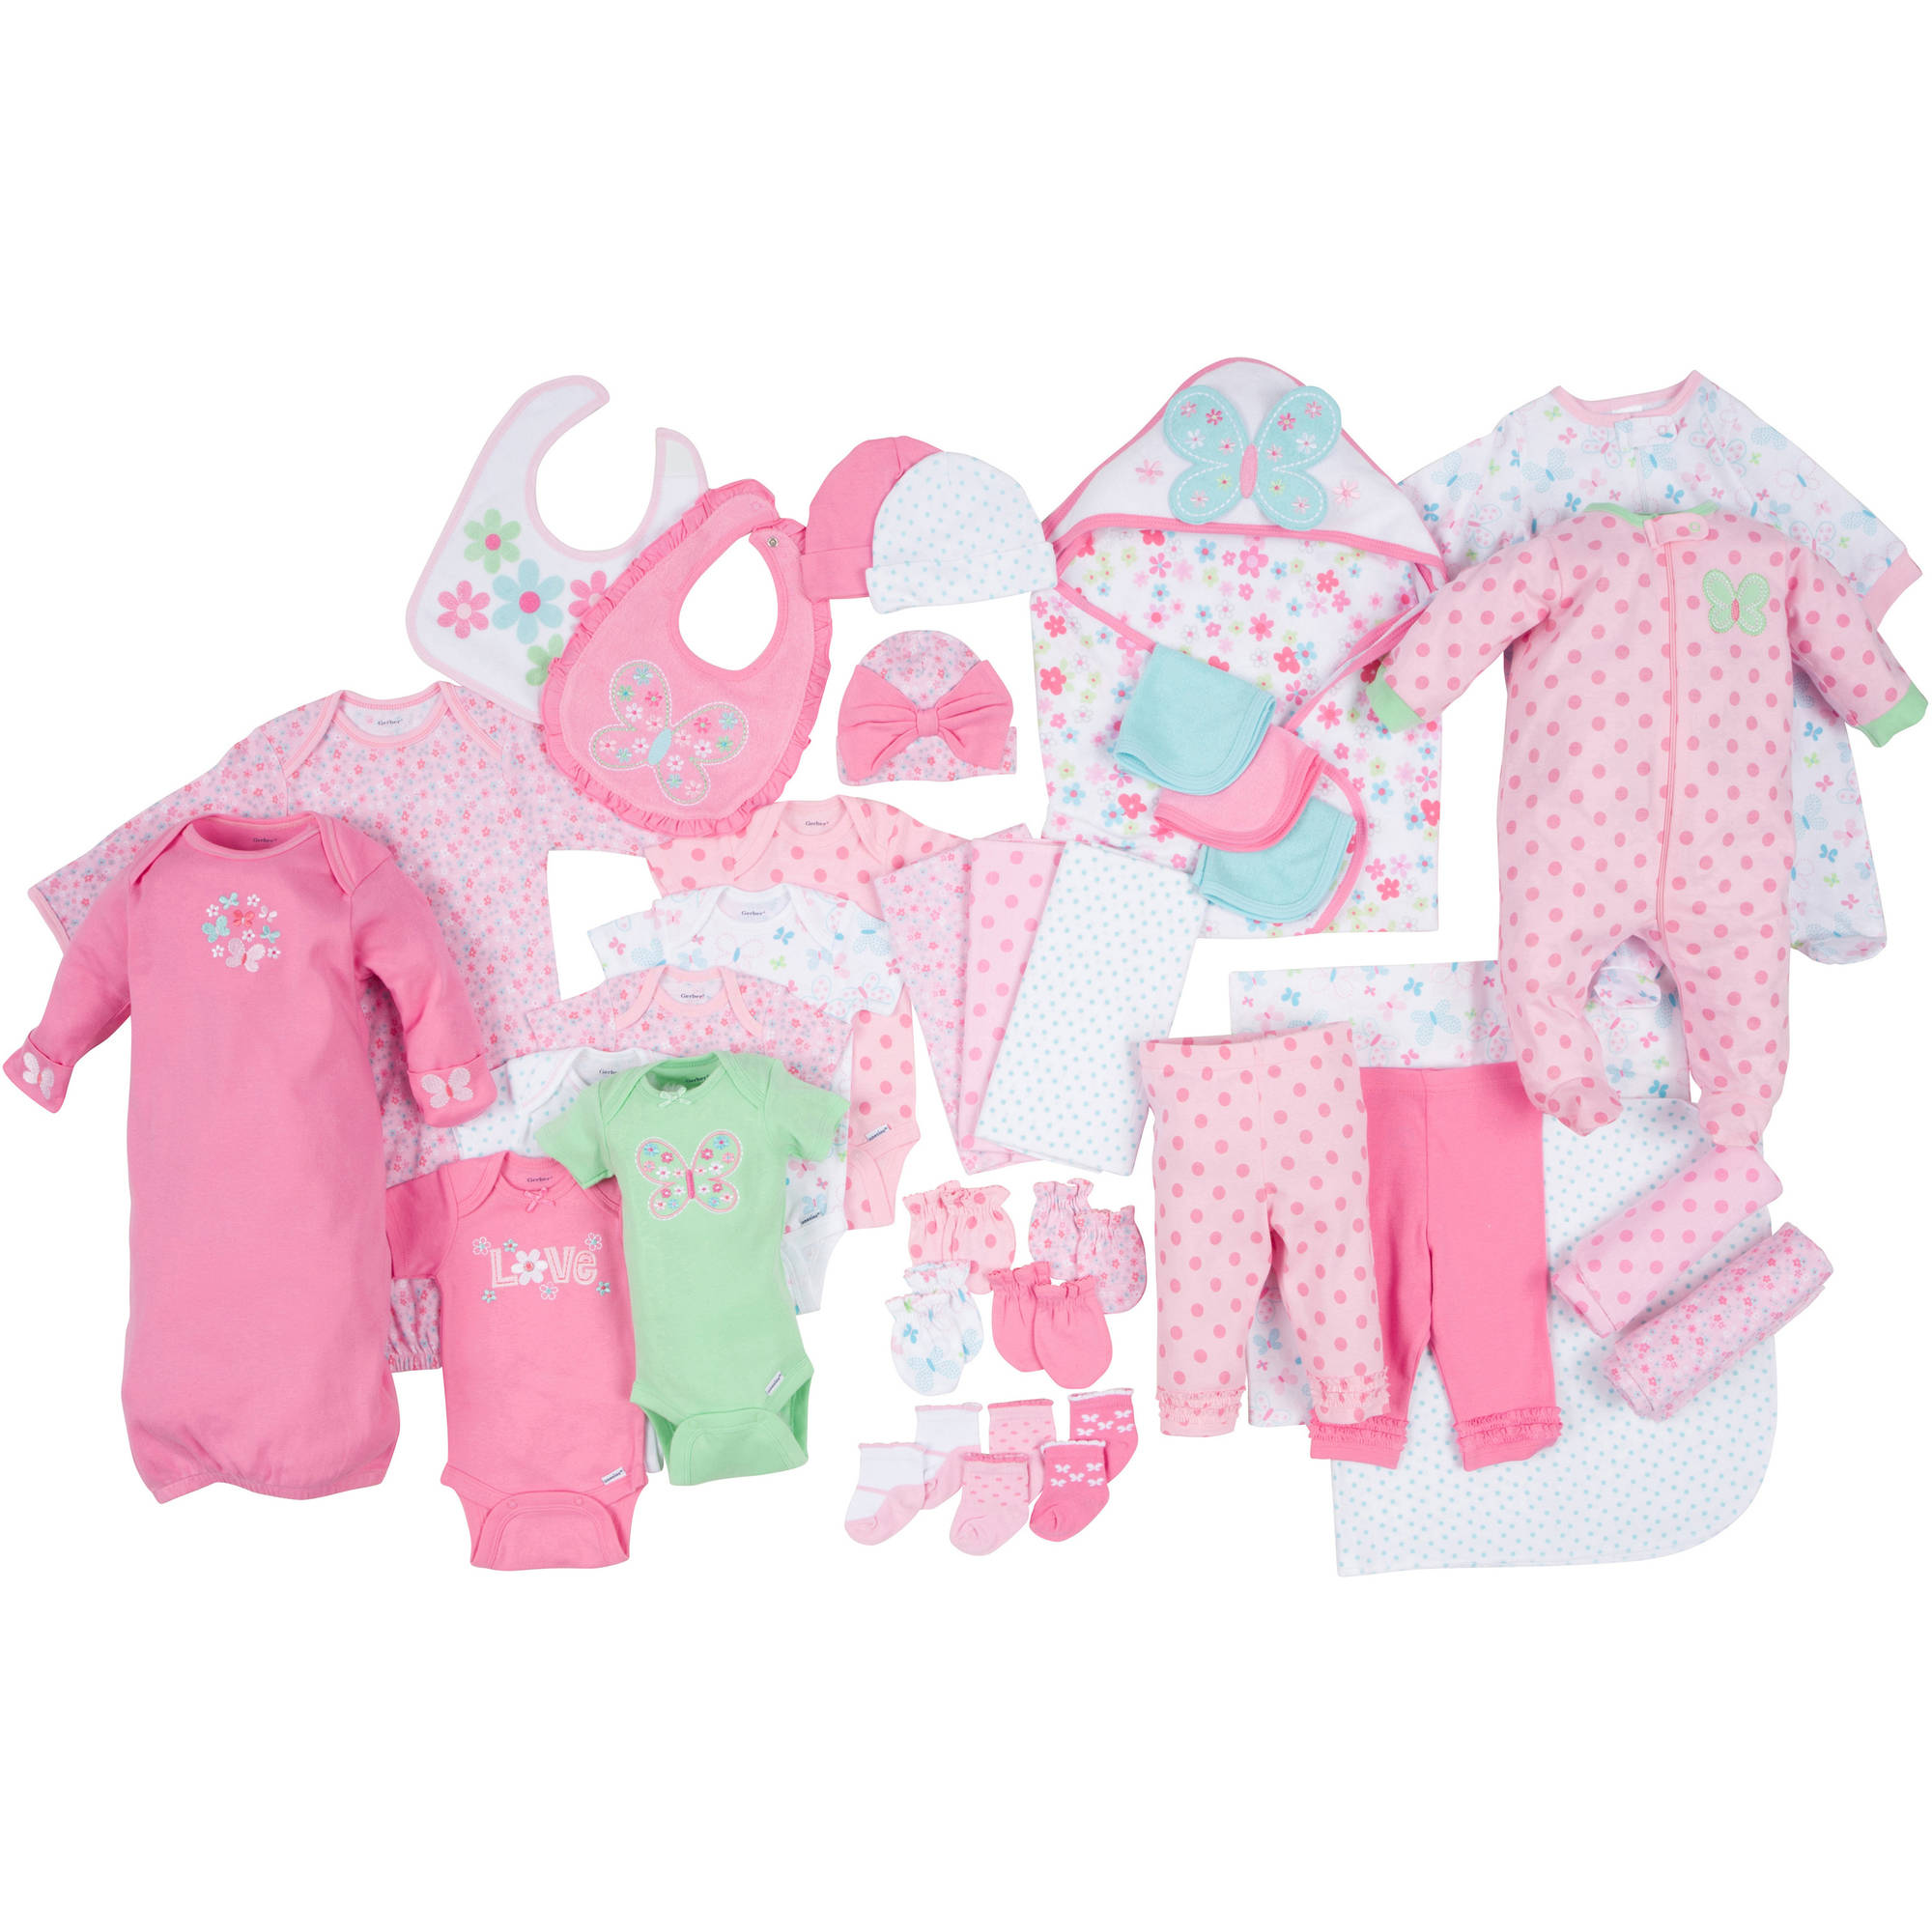 Gerber Newborn Baby Girl Perfect Baby Shower Gift Layette Set,  33-Piece